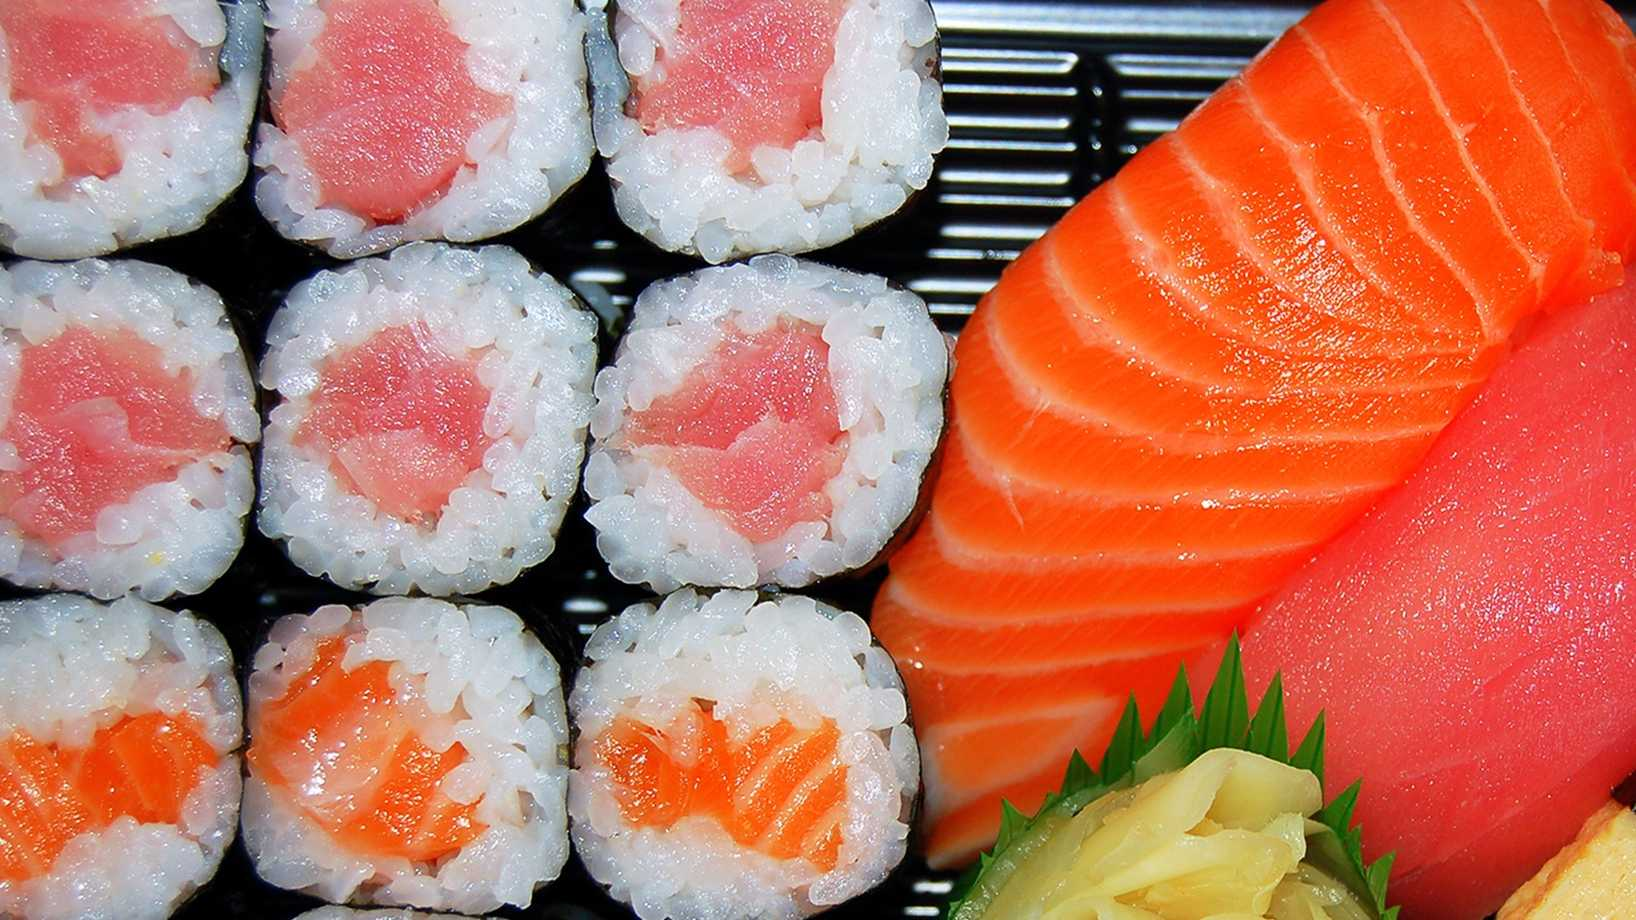 Sushi -- Raw seafood like sushi can contain harmful parasites and bacteria.